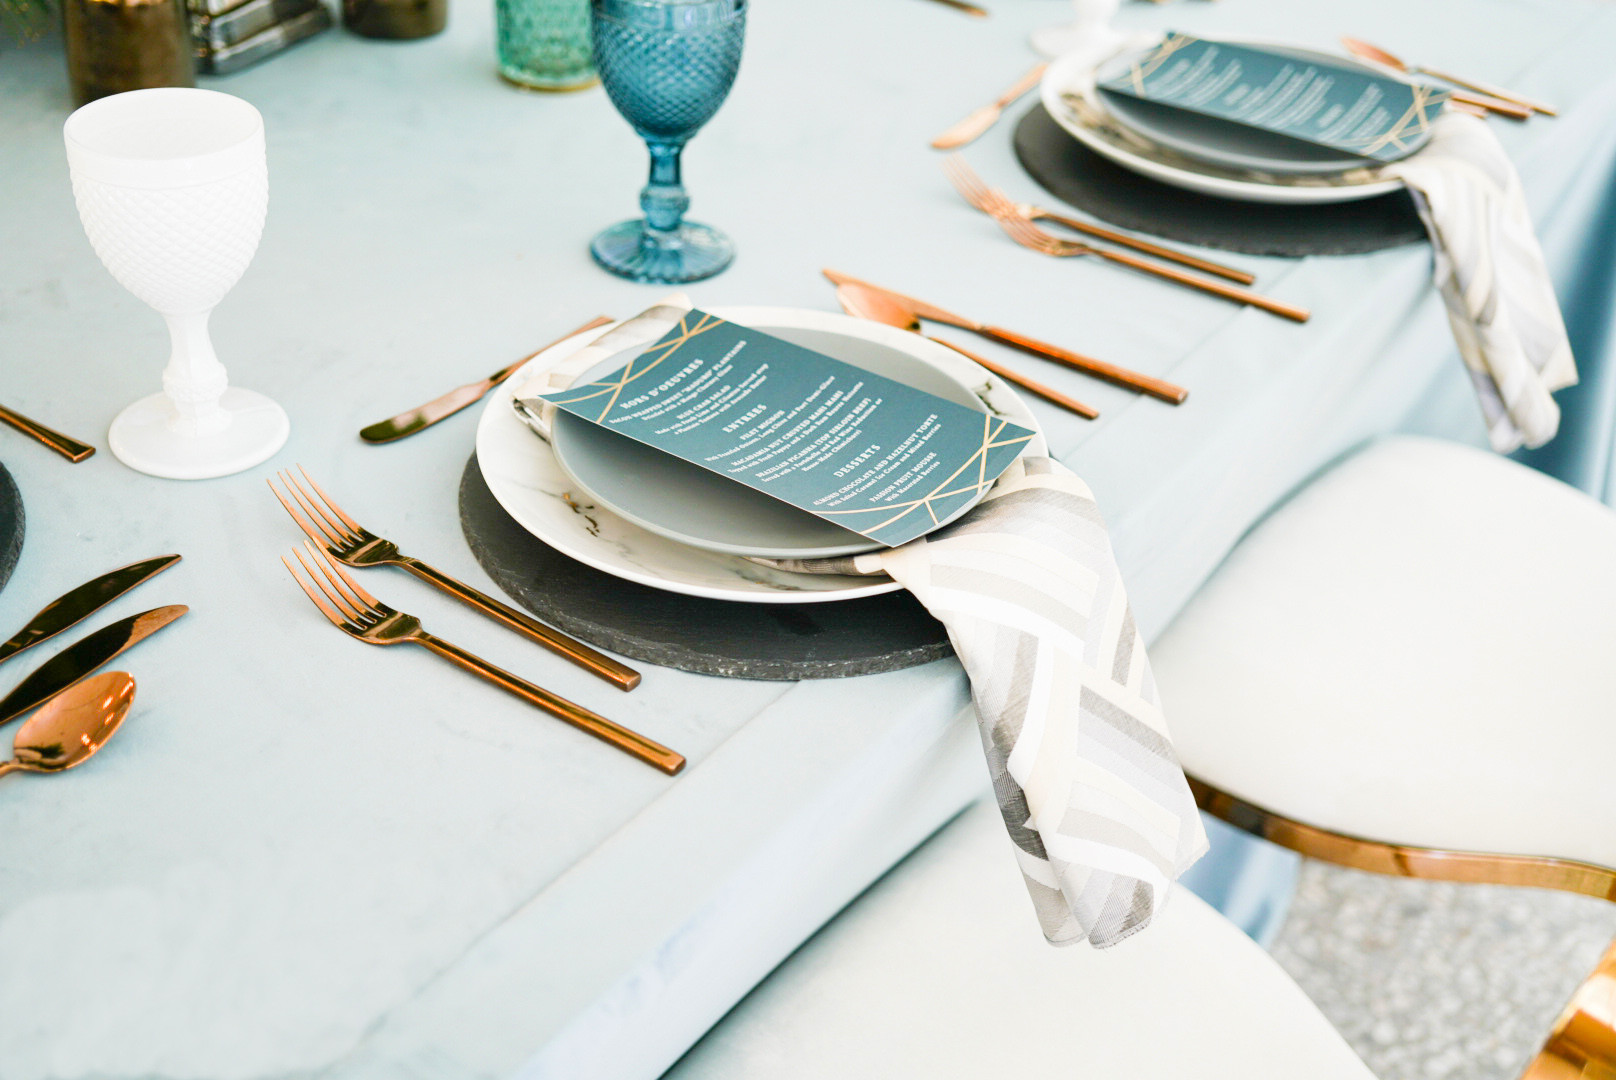 20 Unique Wedding Reception Place Settings For Every Style The Celebration Society